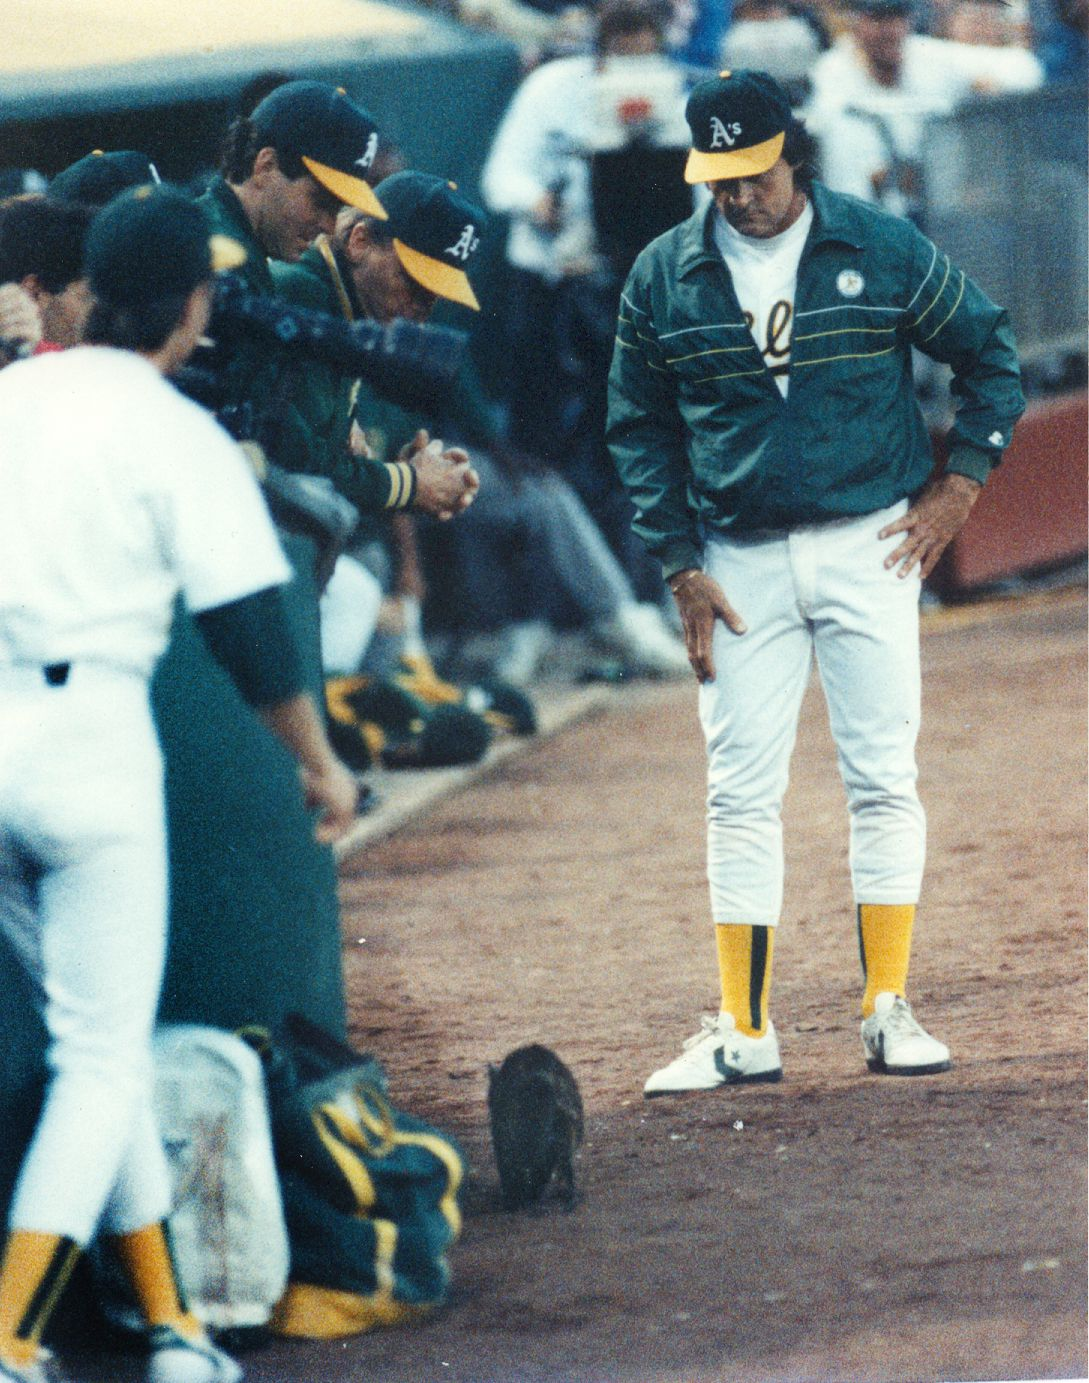 A's manager Tony LaRussa looks down at the cat that stopped play during a game between the A's and the Yankees at the Oakland Coliseum on May 7, 1990. LaRussa ended up herding the cat into the team's dugout bathroom.